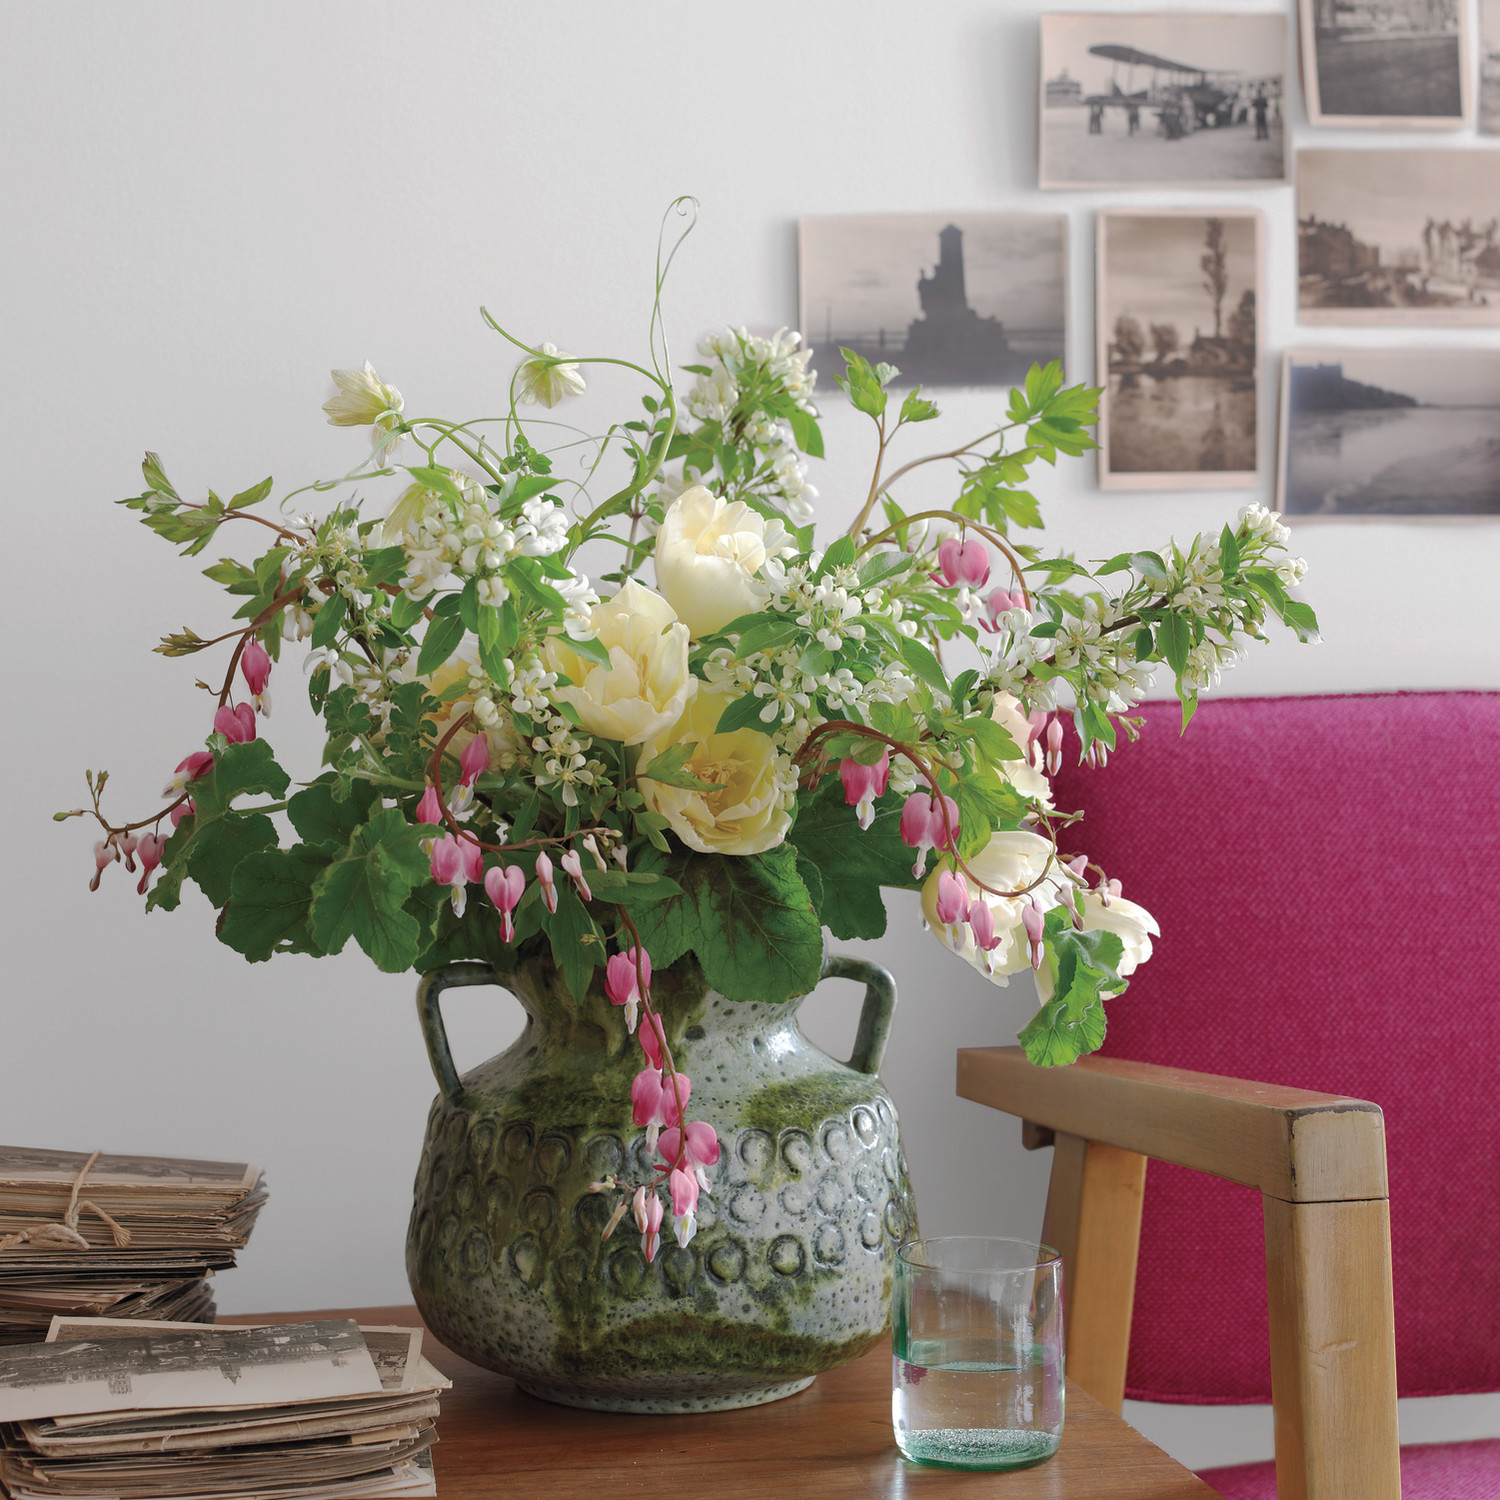 Natural indoor flower arrangements martha stewart - Plant decorating ideas tasteful nature ...